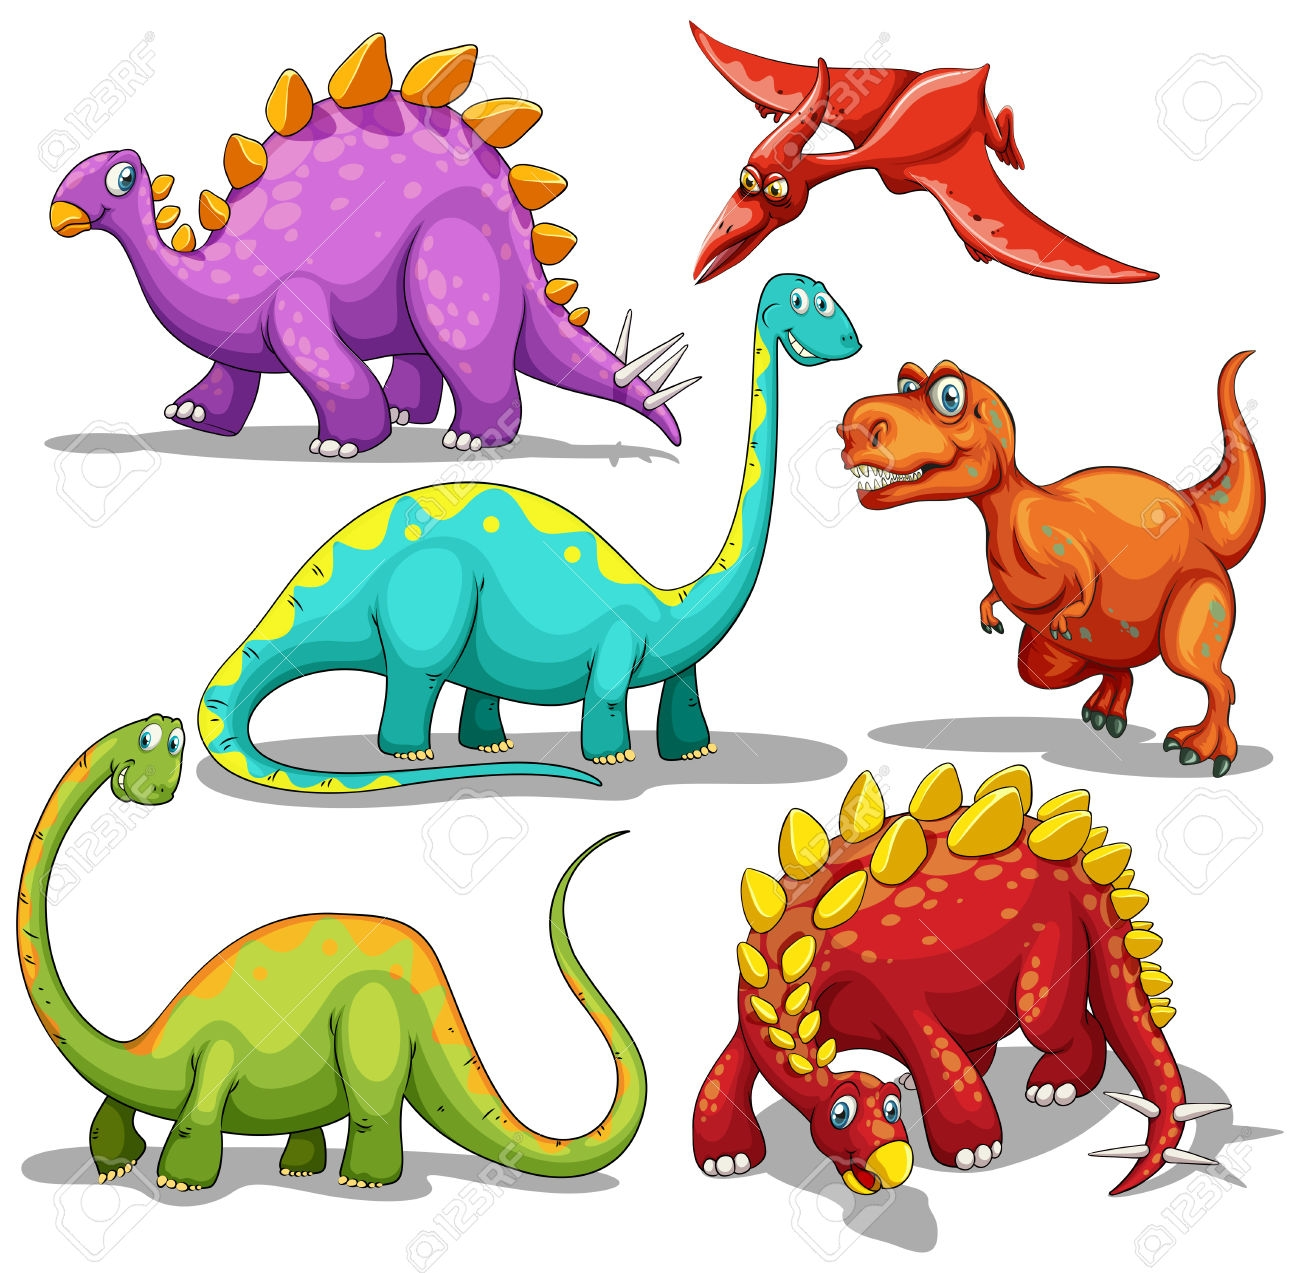 Dinosaurs clipart Beautiful Top 91 Dinosaurs Clip Art Free.